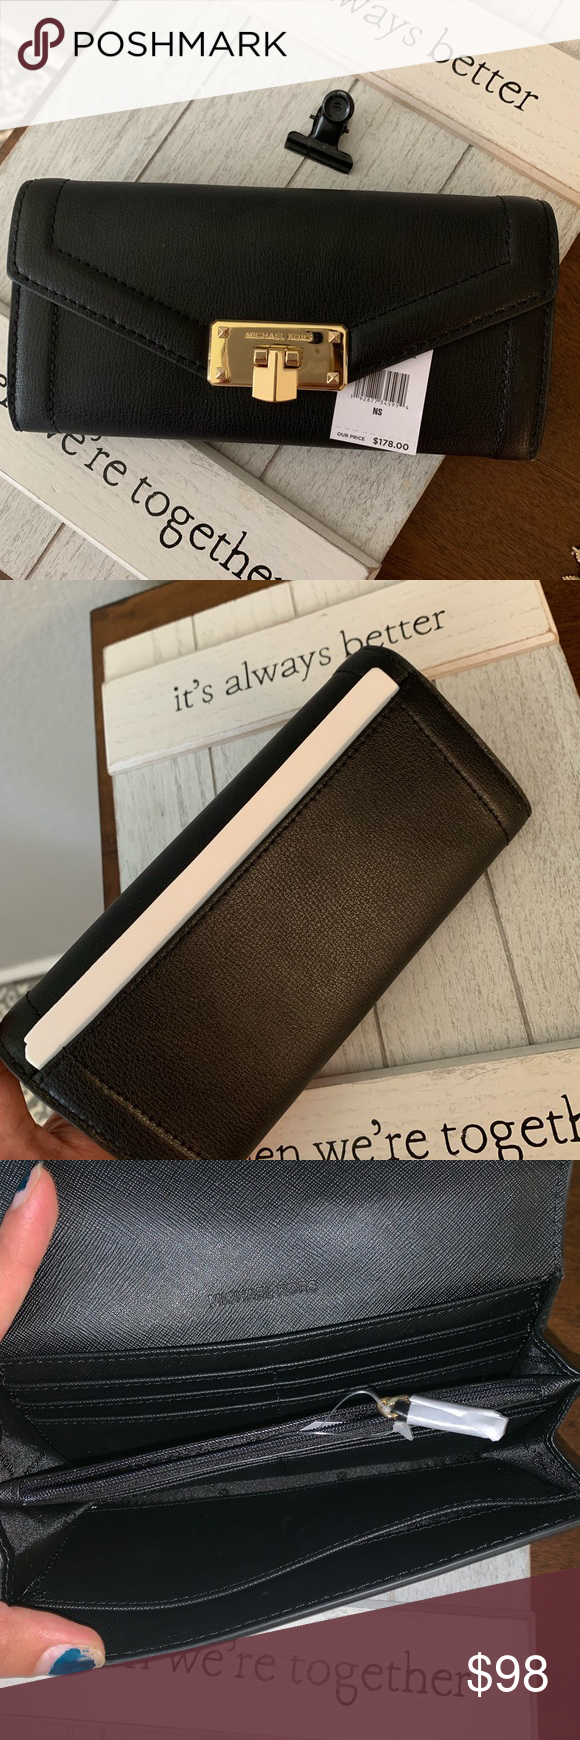 New MK wallet full size 🖤 Beautiful leather MK wallet new ...